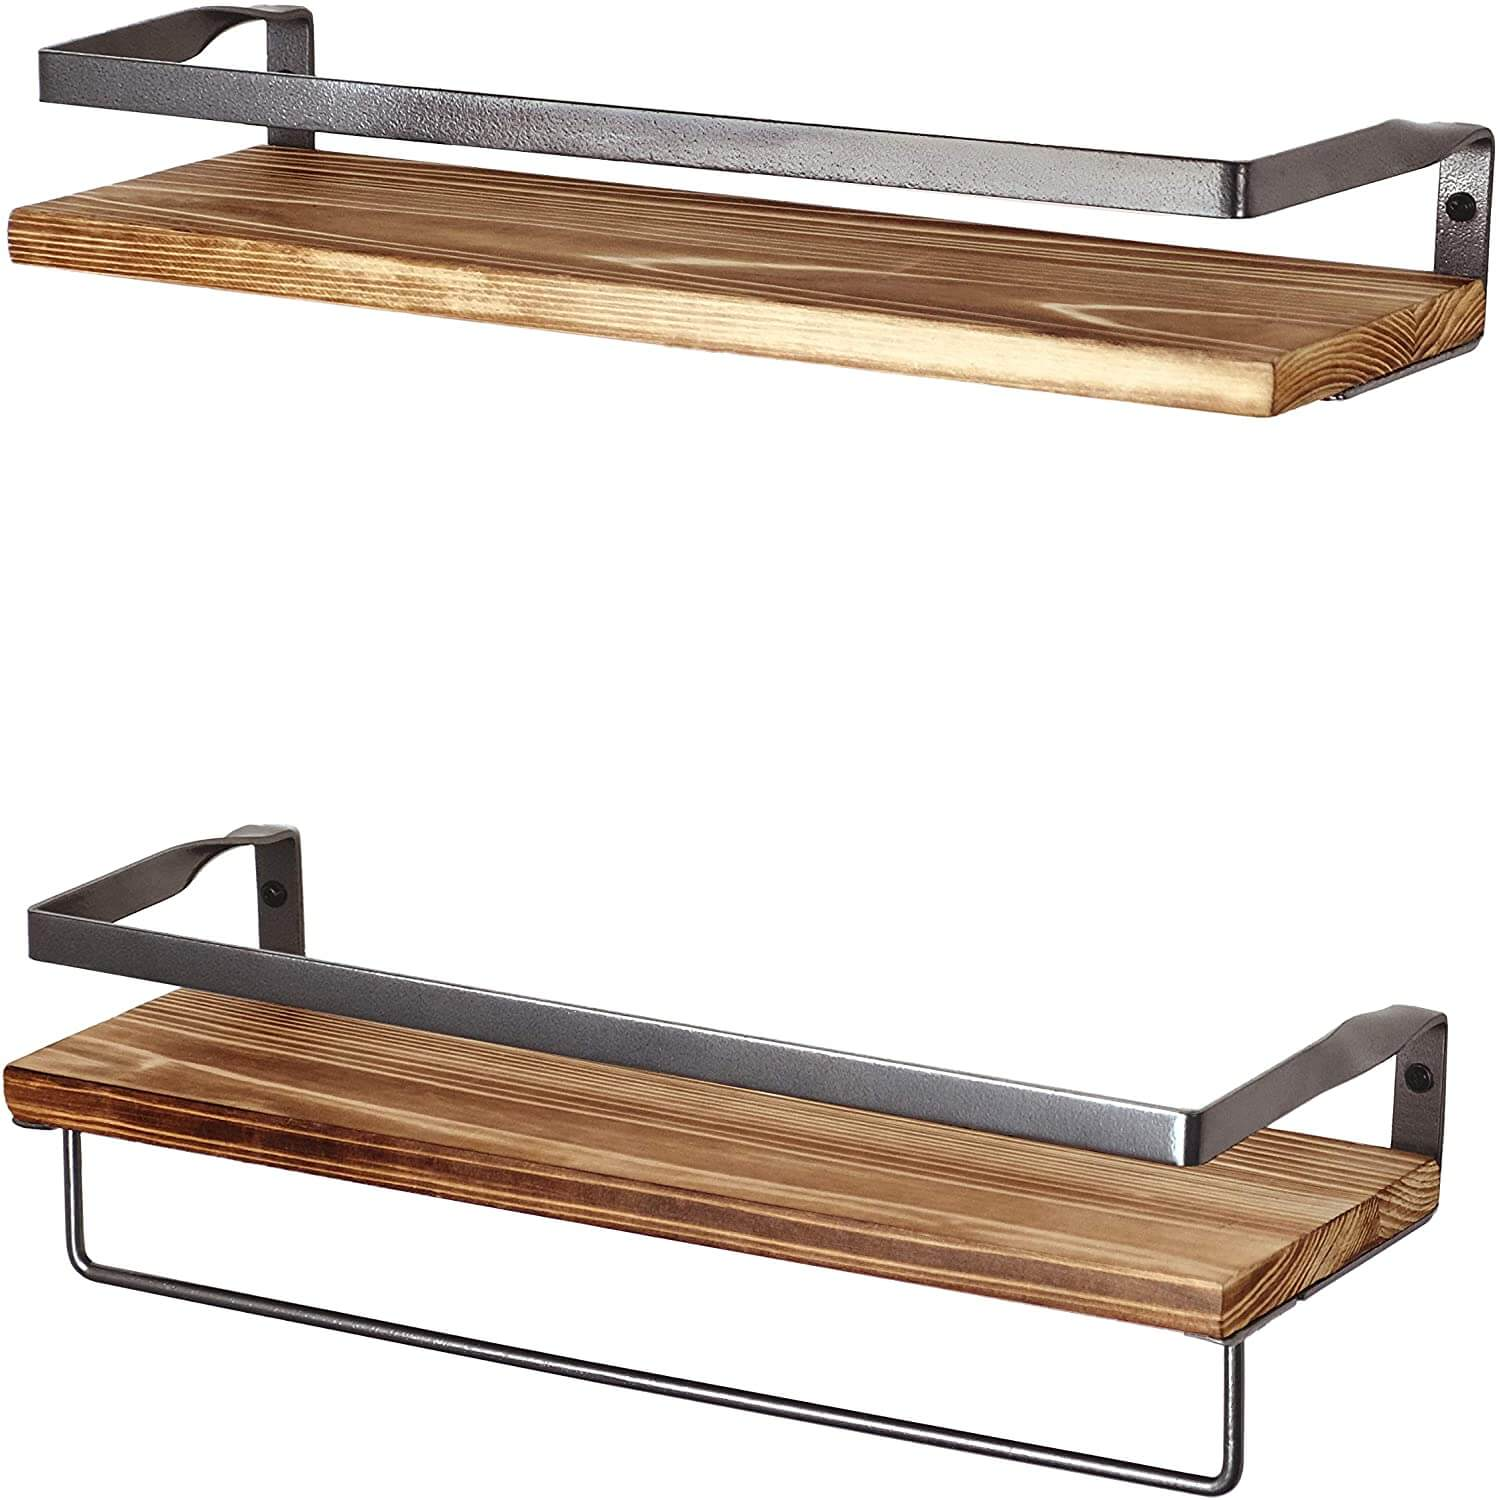 Peter's Goods: Rustic Floating Wall Shelves with Rails